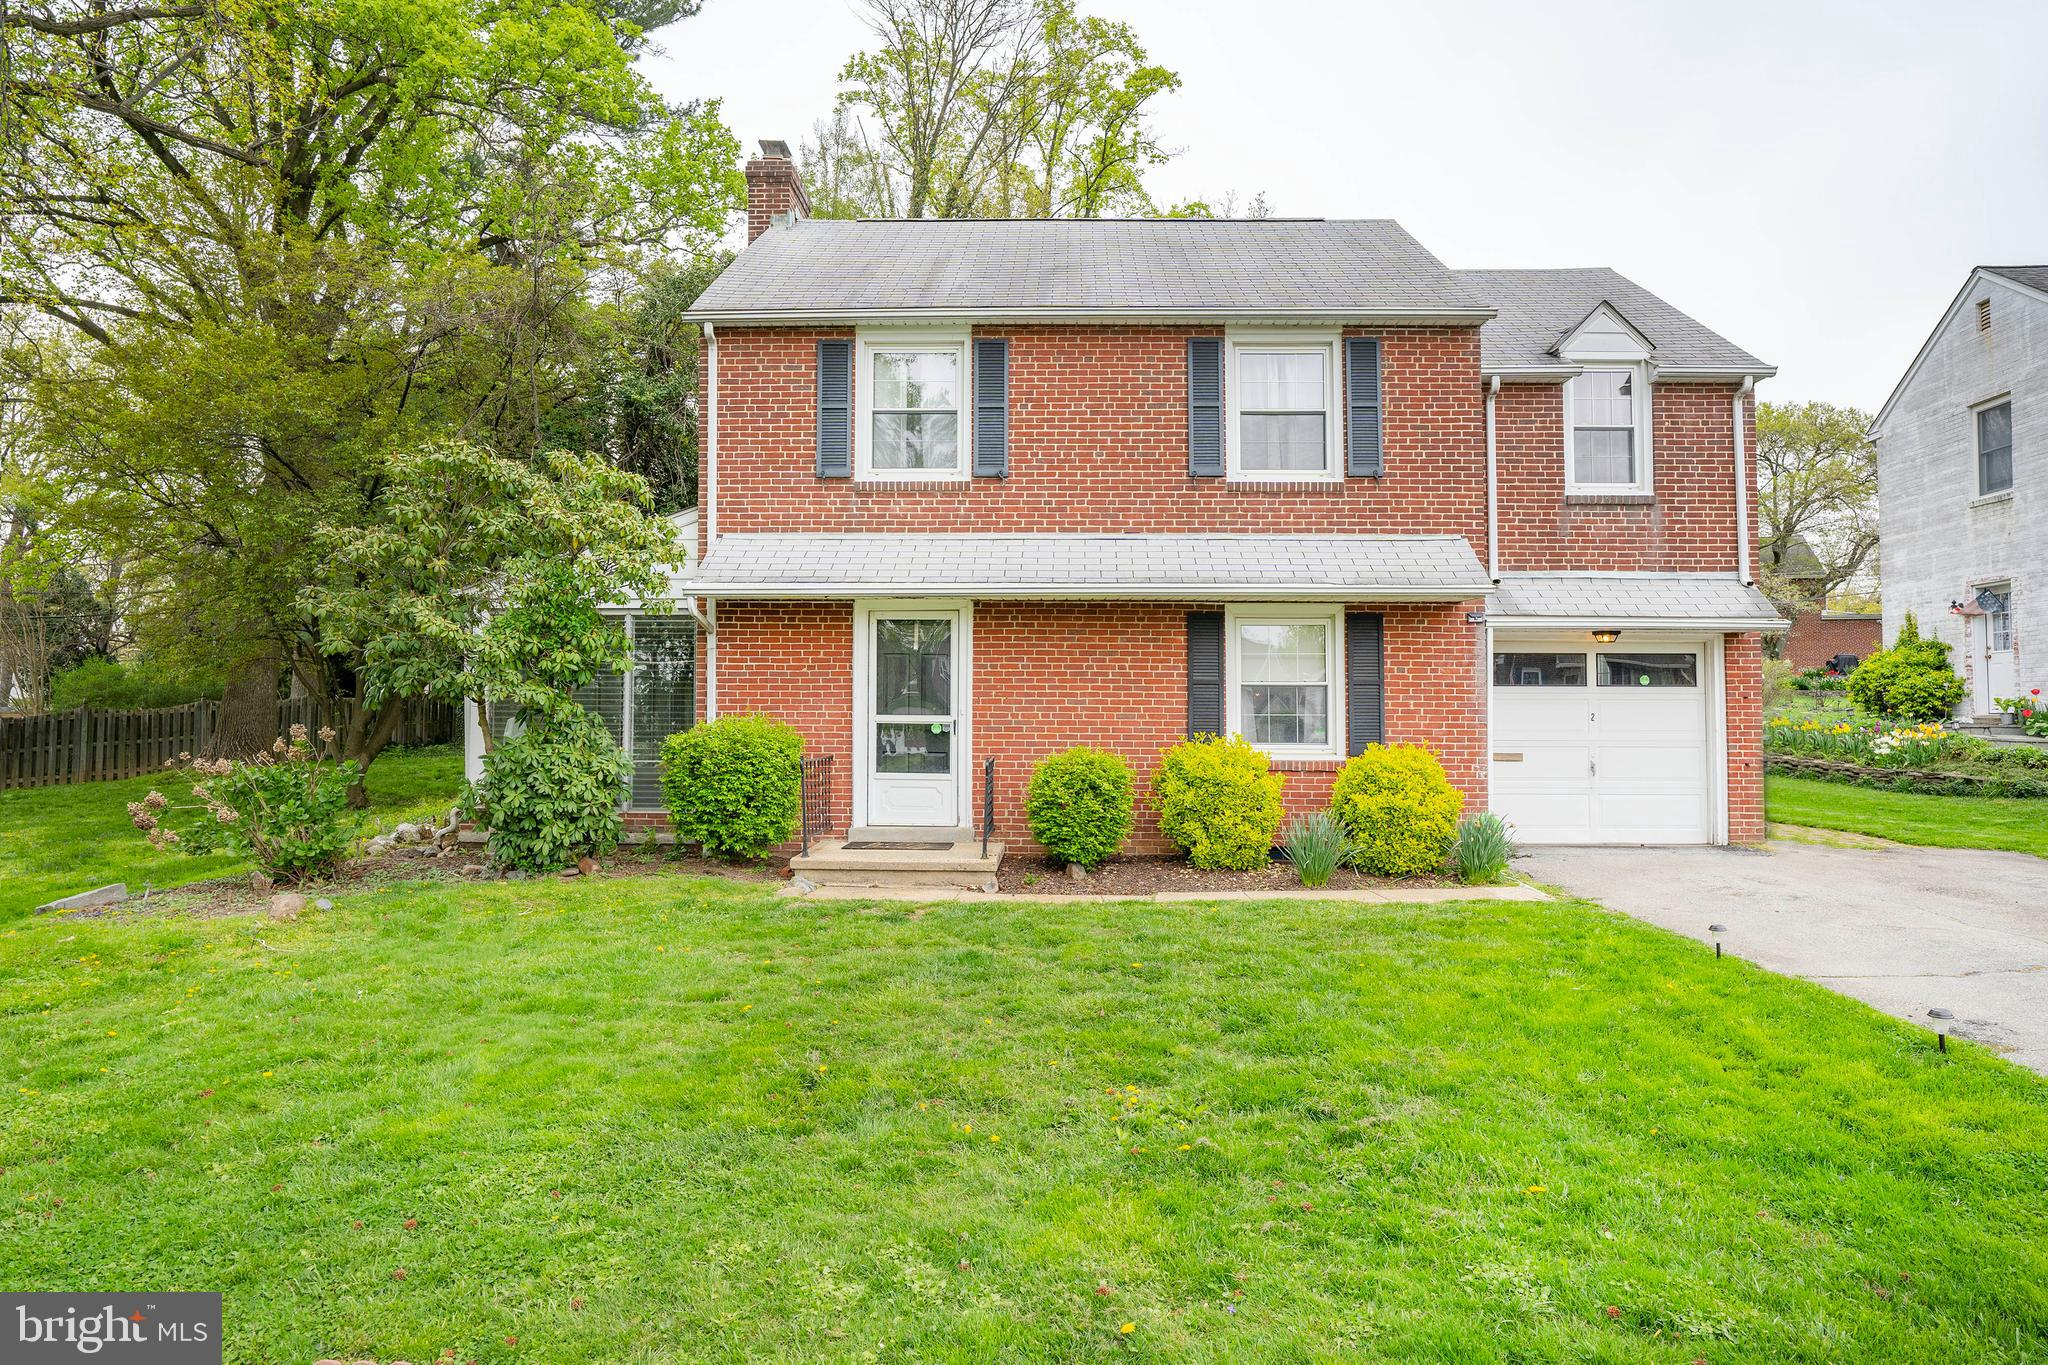 Welcome home to this charming 3 bedroom, 2 bathroom classic brick colonial in popular Delaire Commun